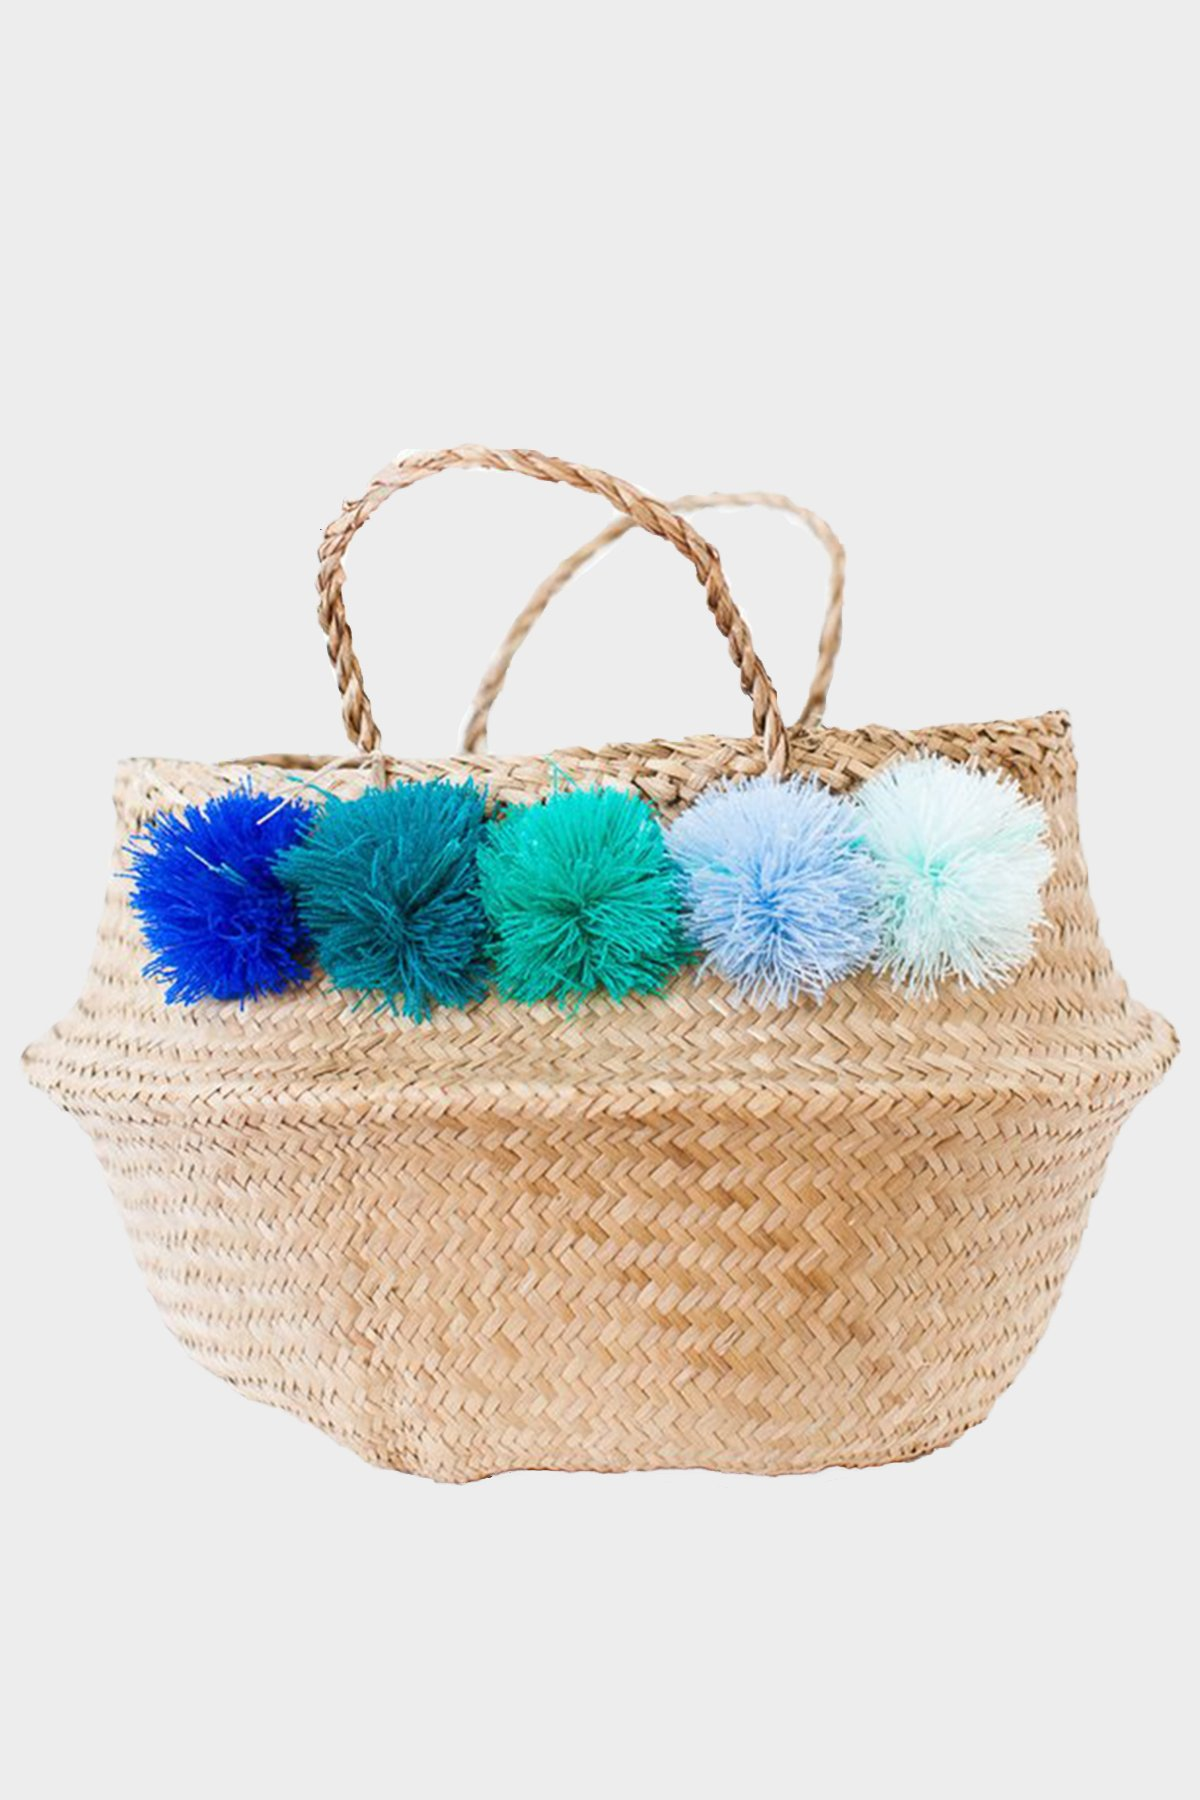 Seagrass-basket-with-blue-and-teal-pom-poms